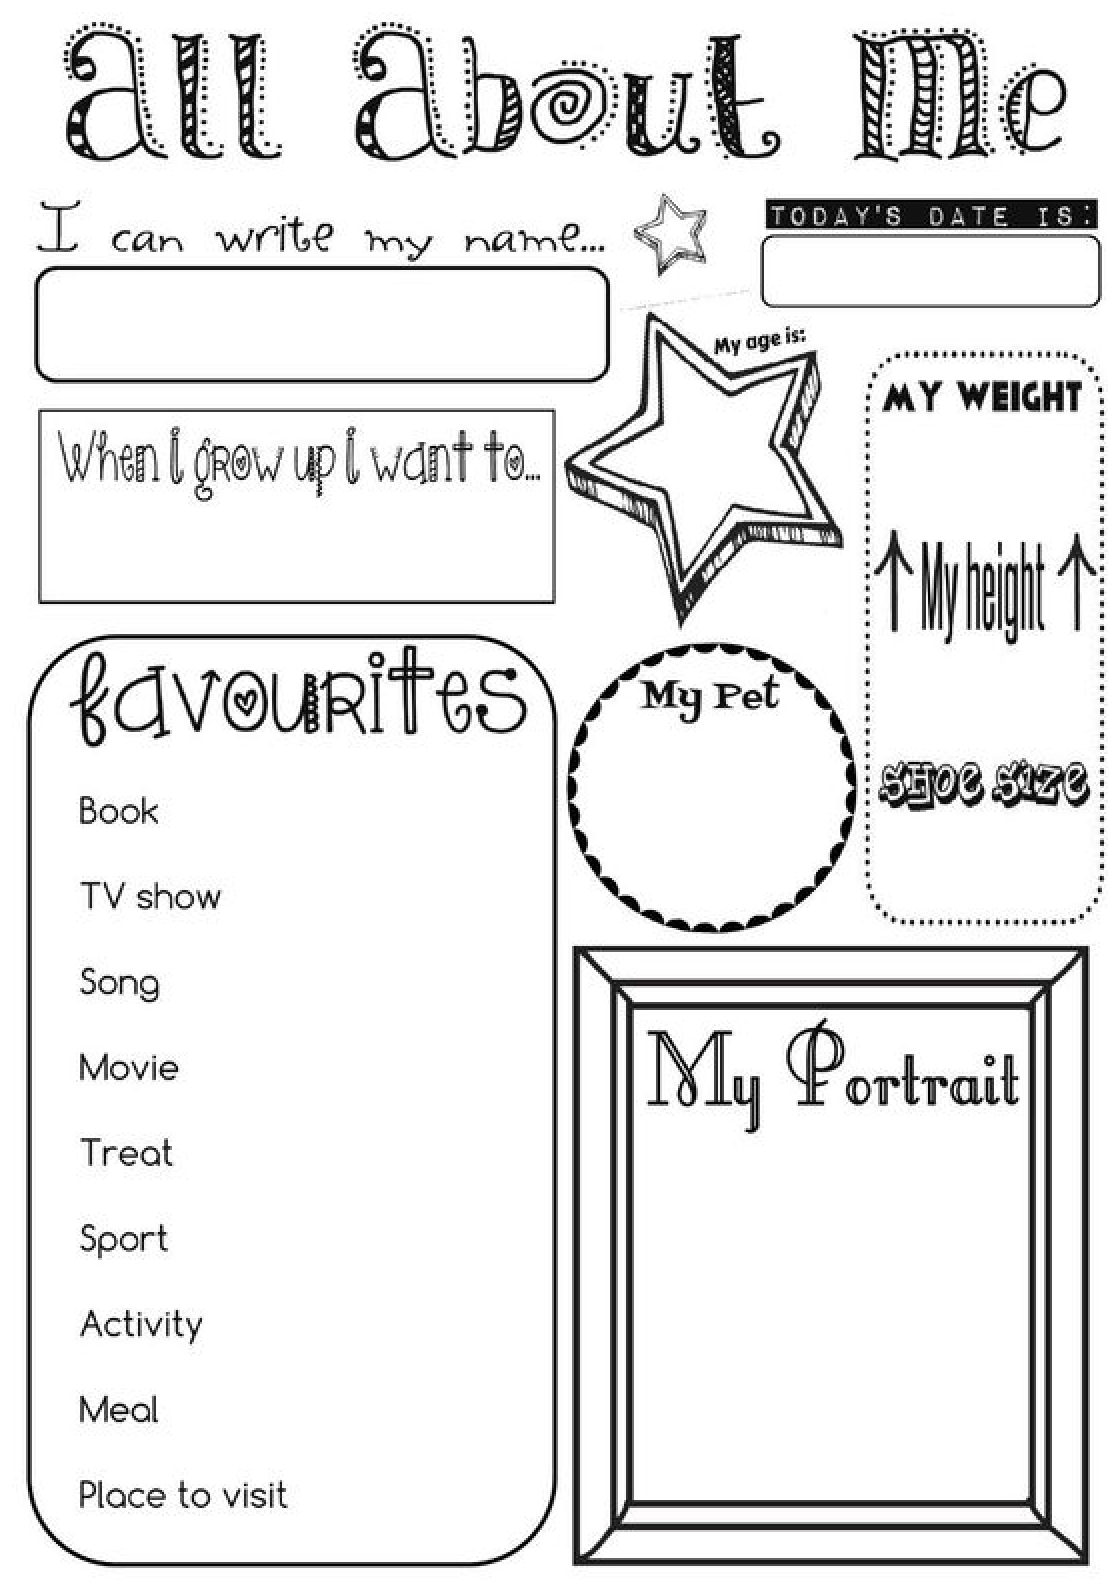 All About Me Activity For Grades 3rd 5th Inspire Girls